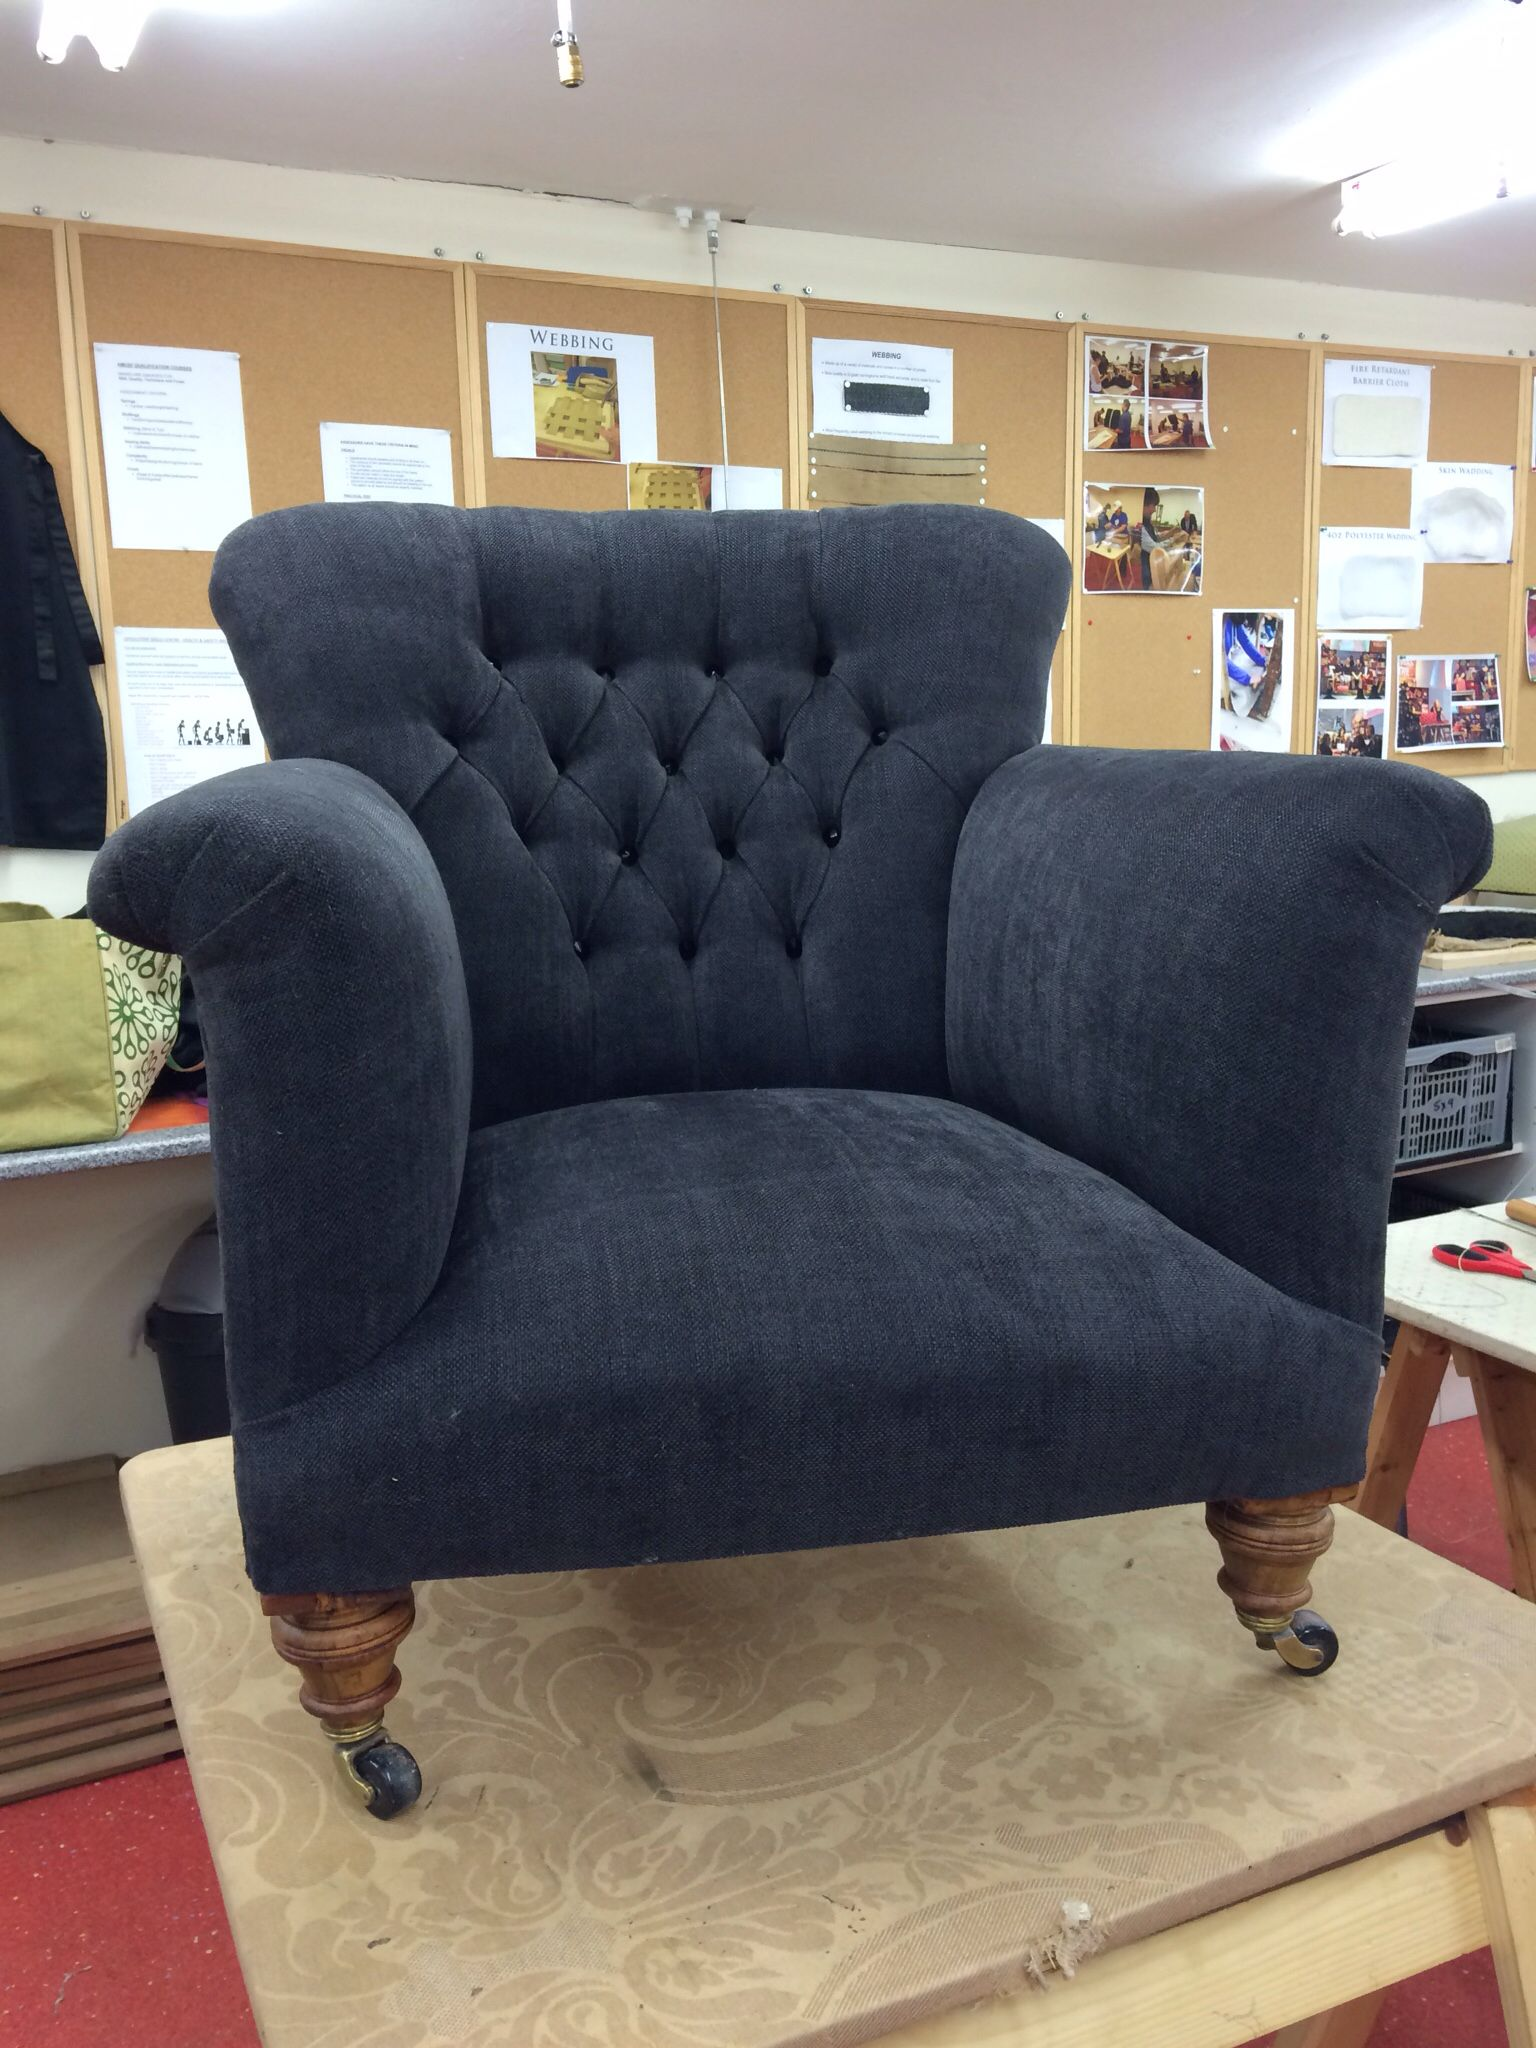 Edwardian arm chair recovered in charcoal chenille fabric deep